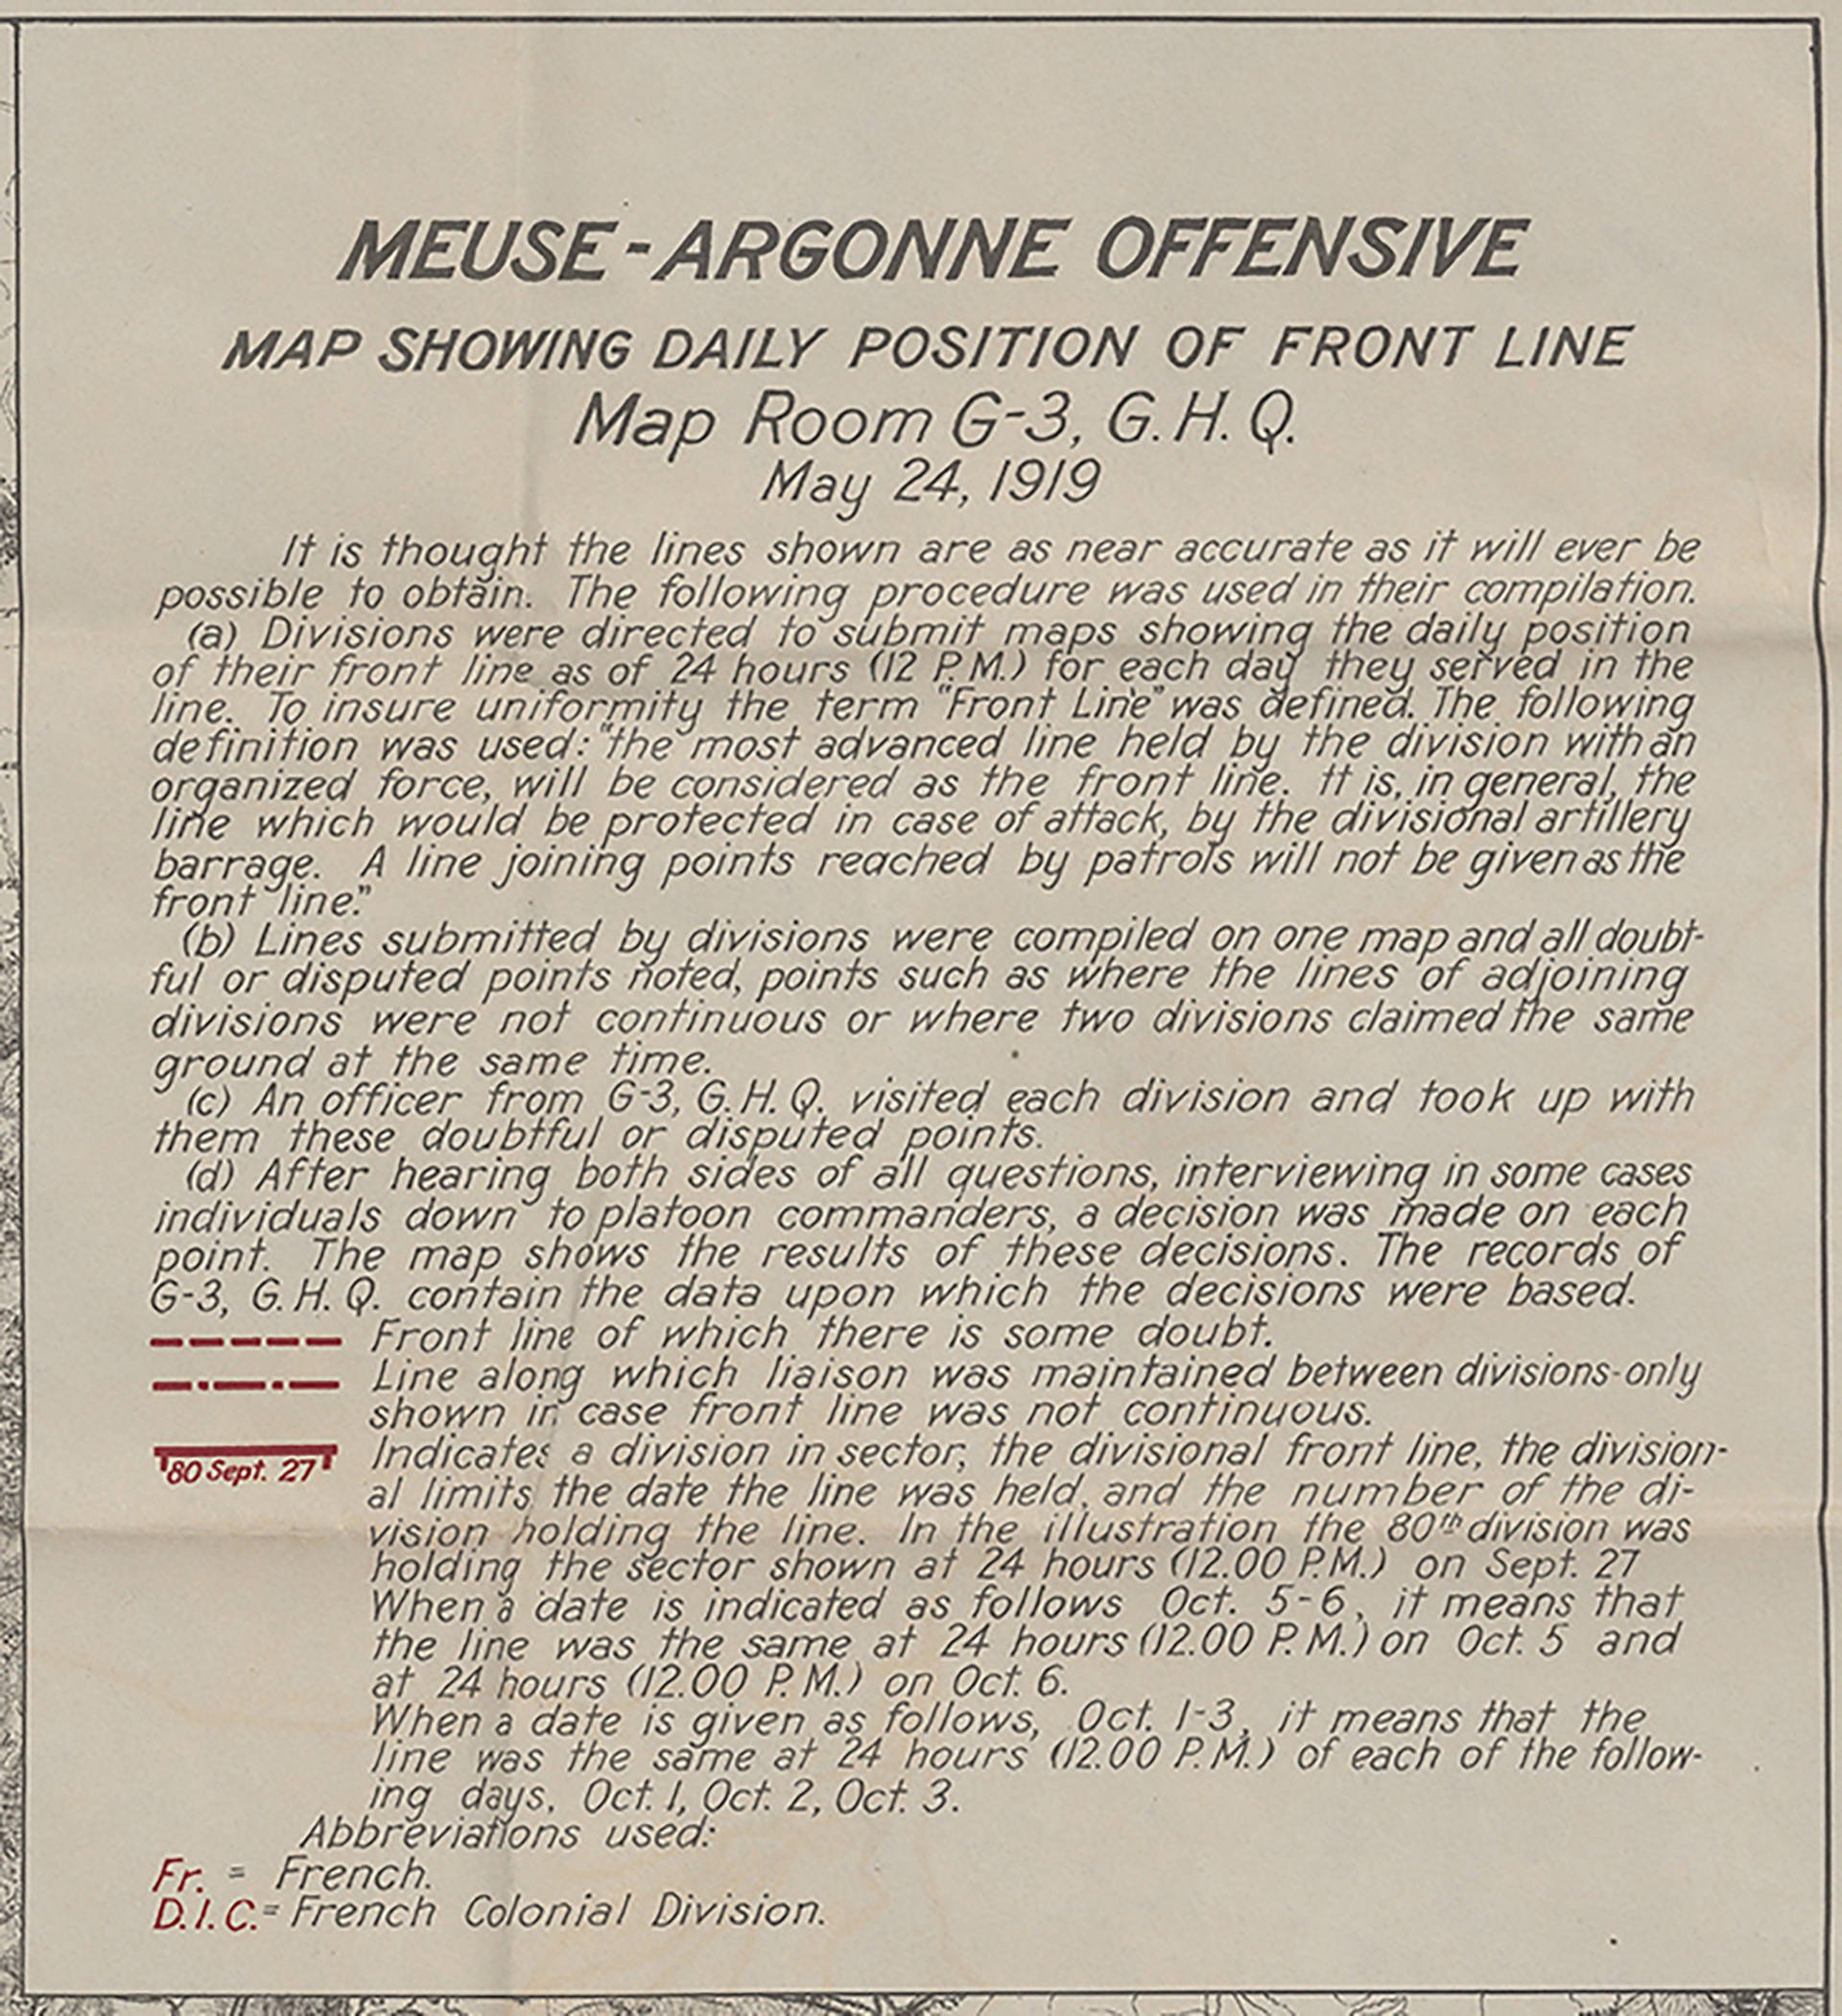 (Detail) Meuse-Argonne Offensive map showing daily position of front line.